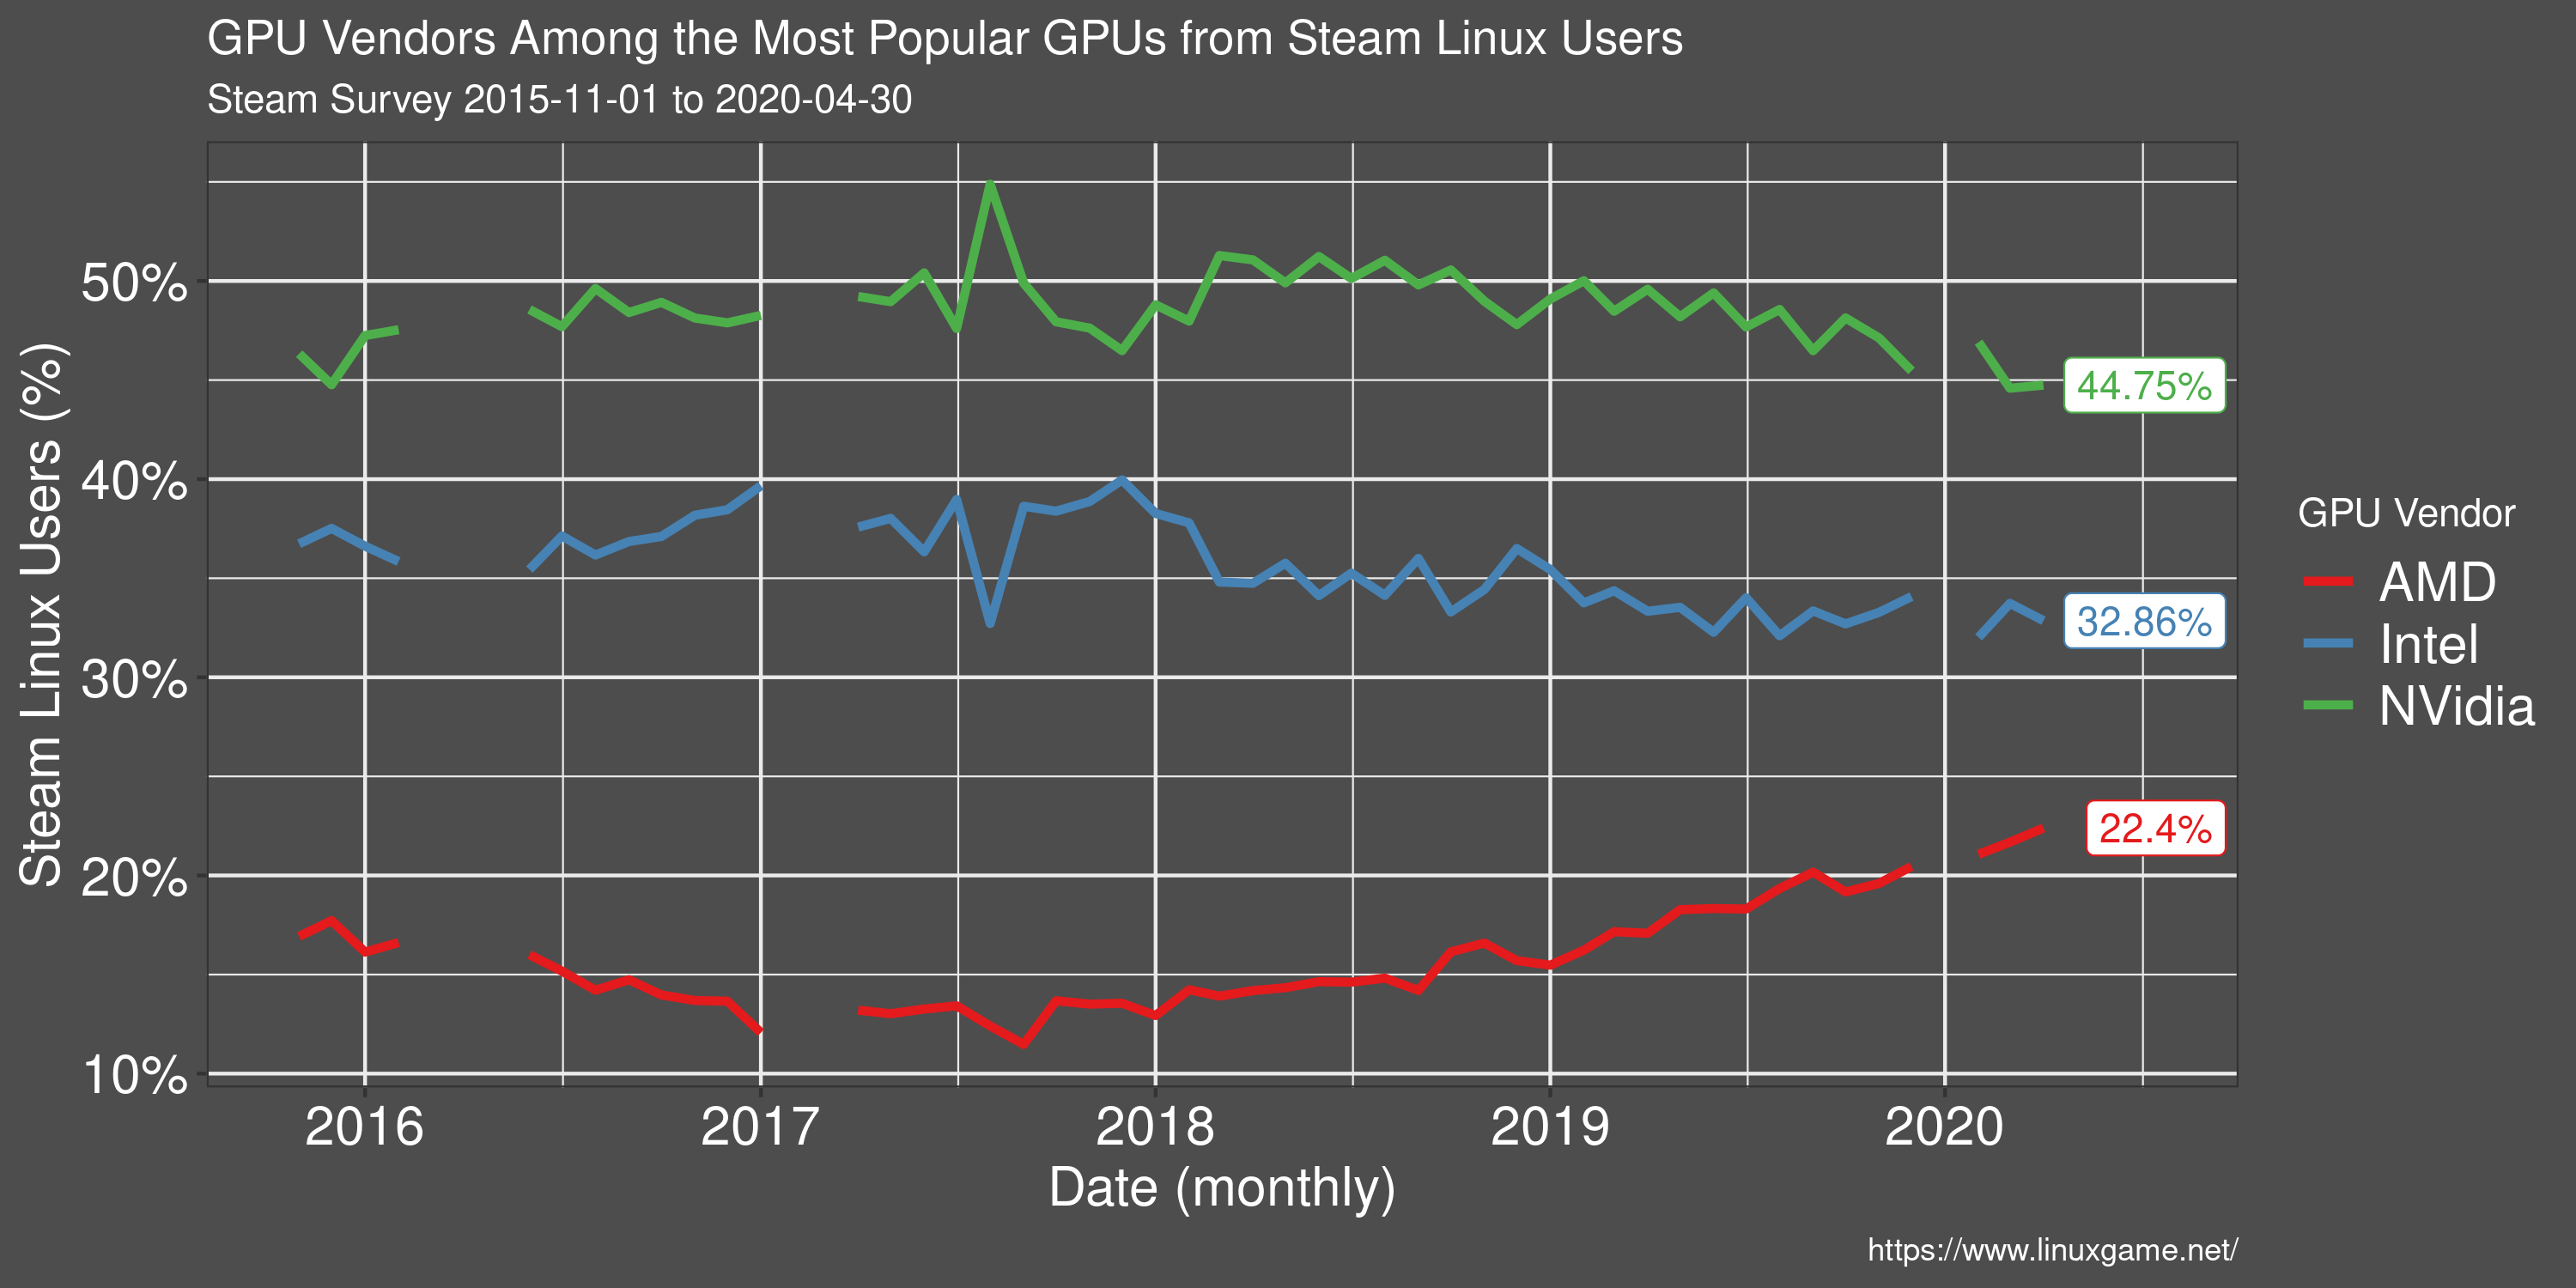 Steam Survey Linux User GPU Vendor Usage